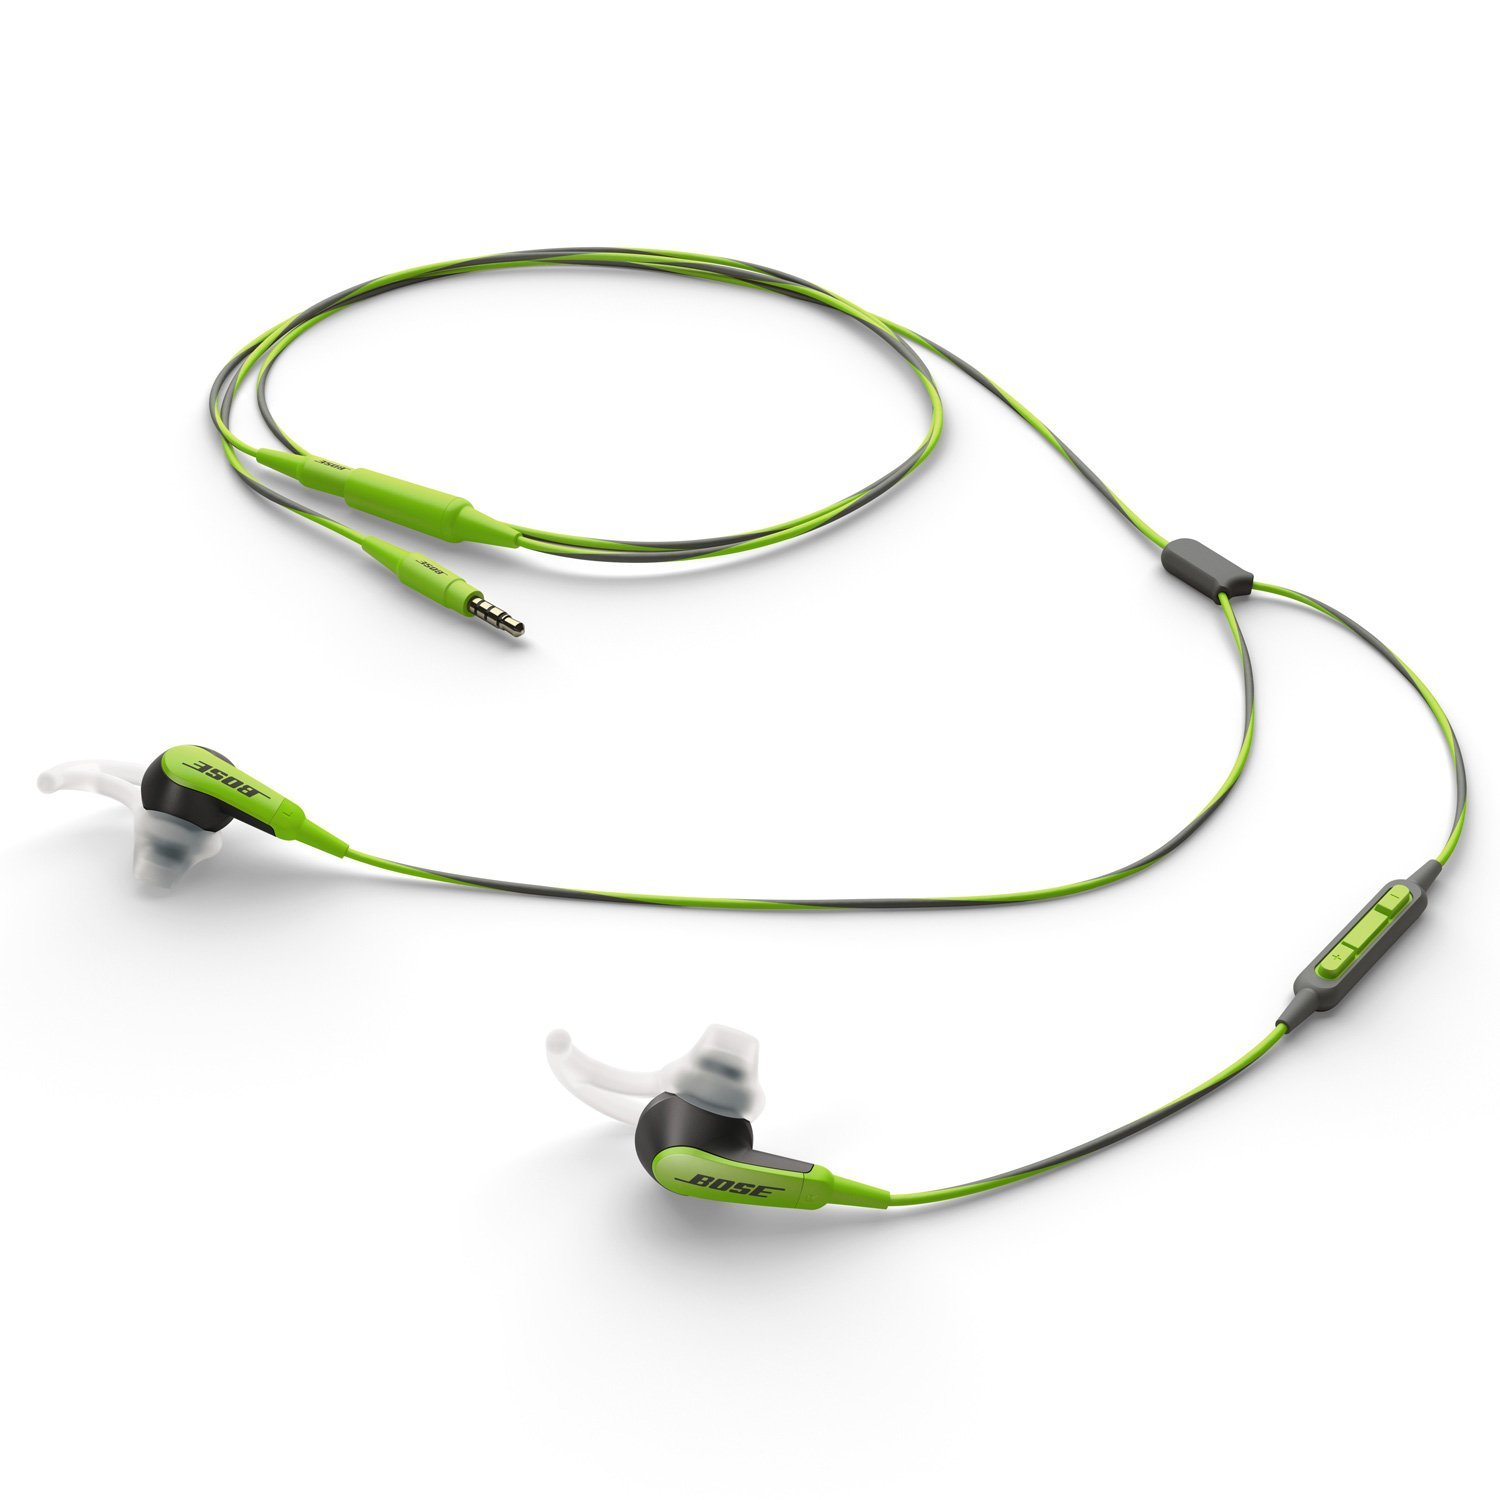 Bose SoundSport In Ear Headphones Review